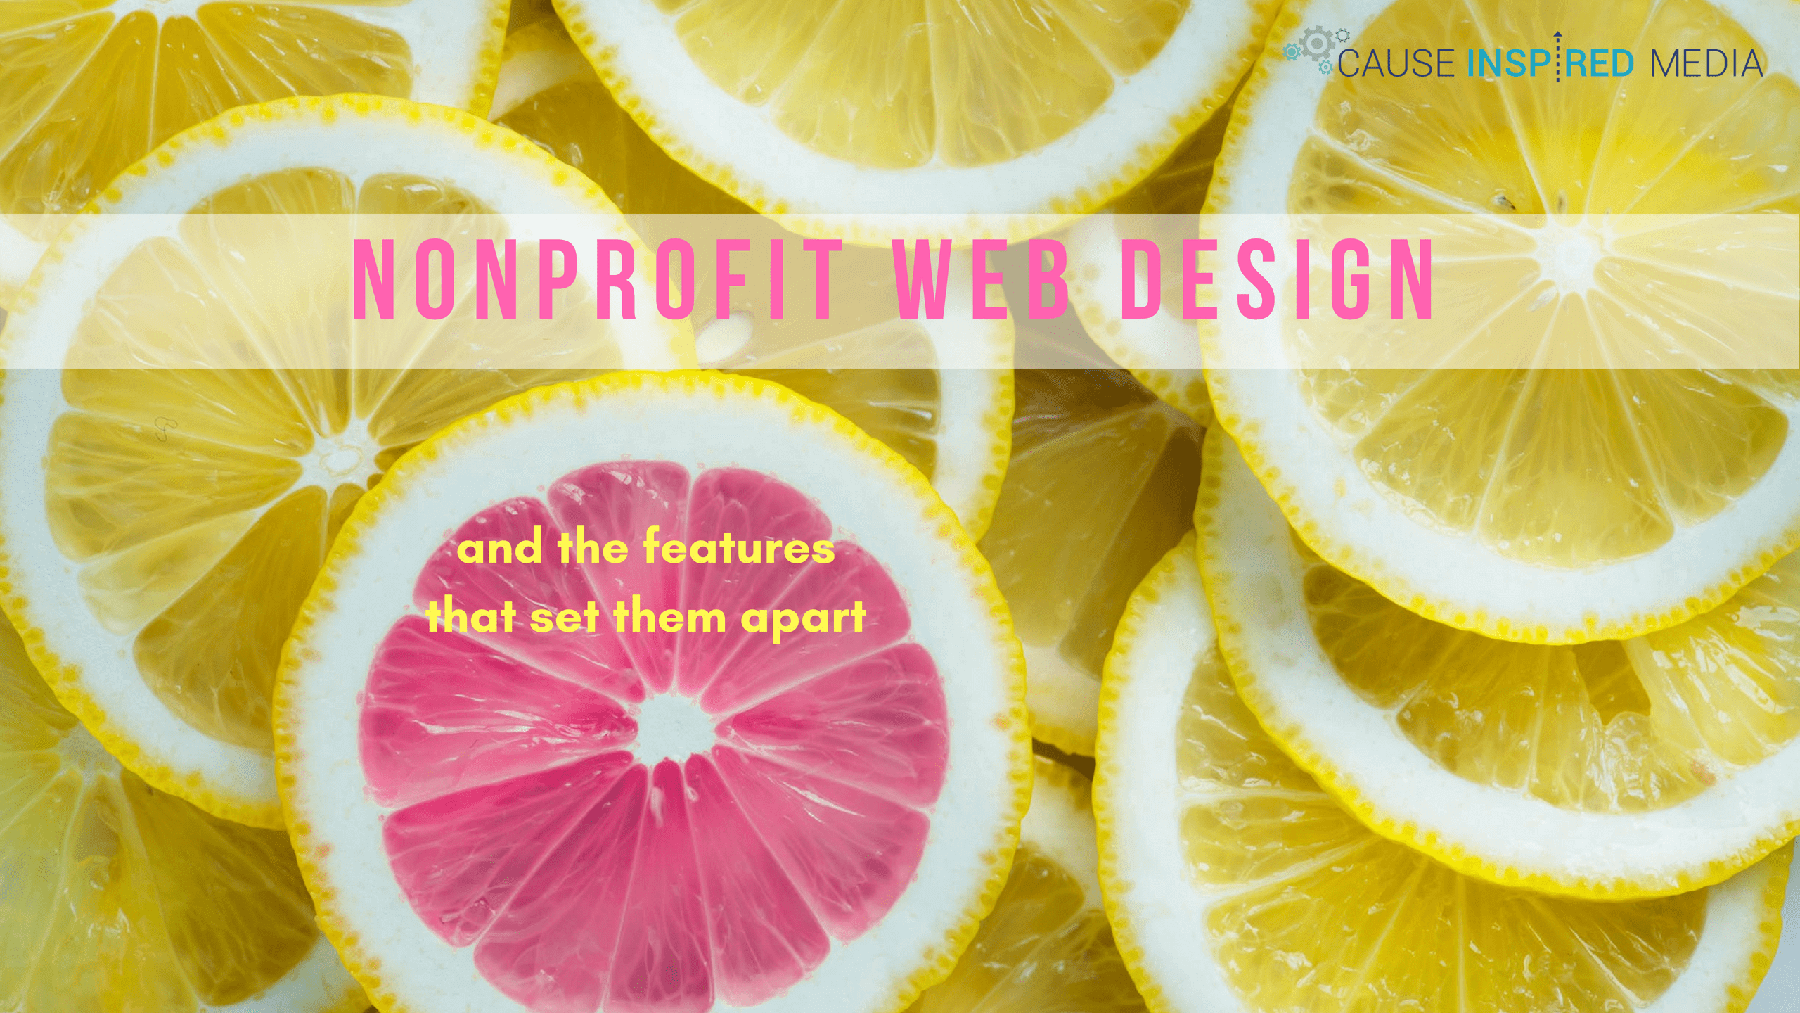 Nonprofit Web Design And The Features That Set Them Apart